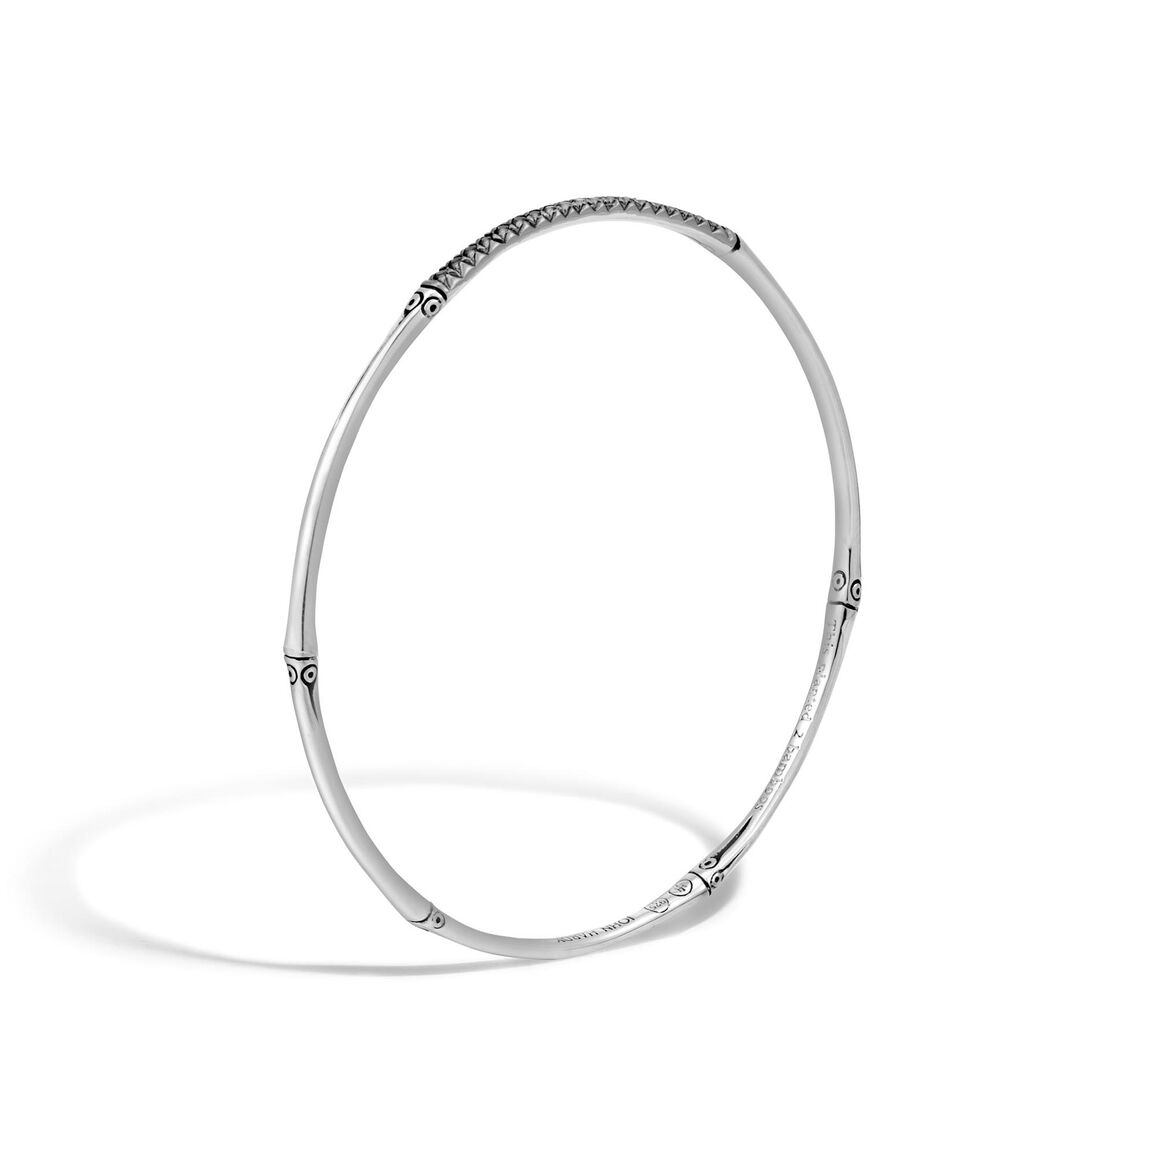 Bamboo 2.5MM Bangle in Silver with Gemstone